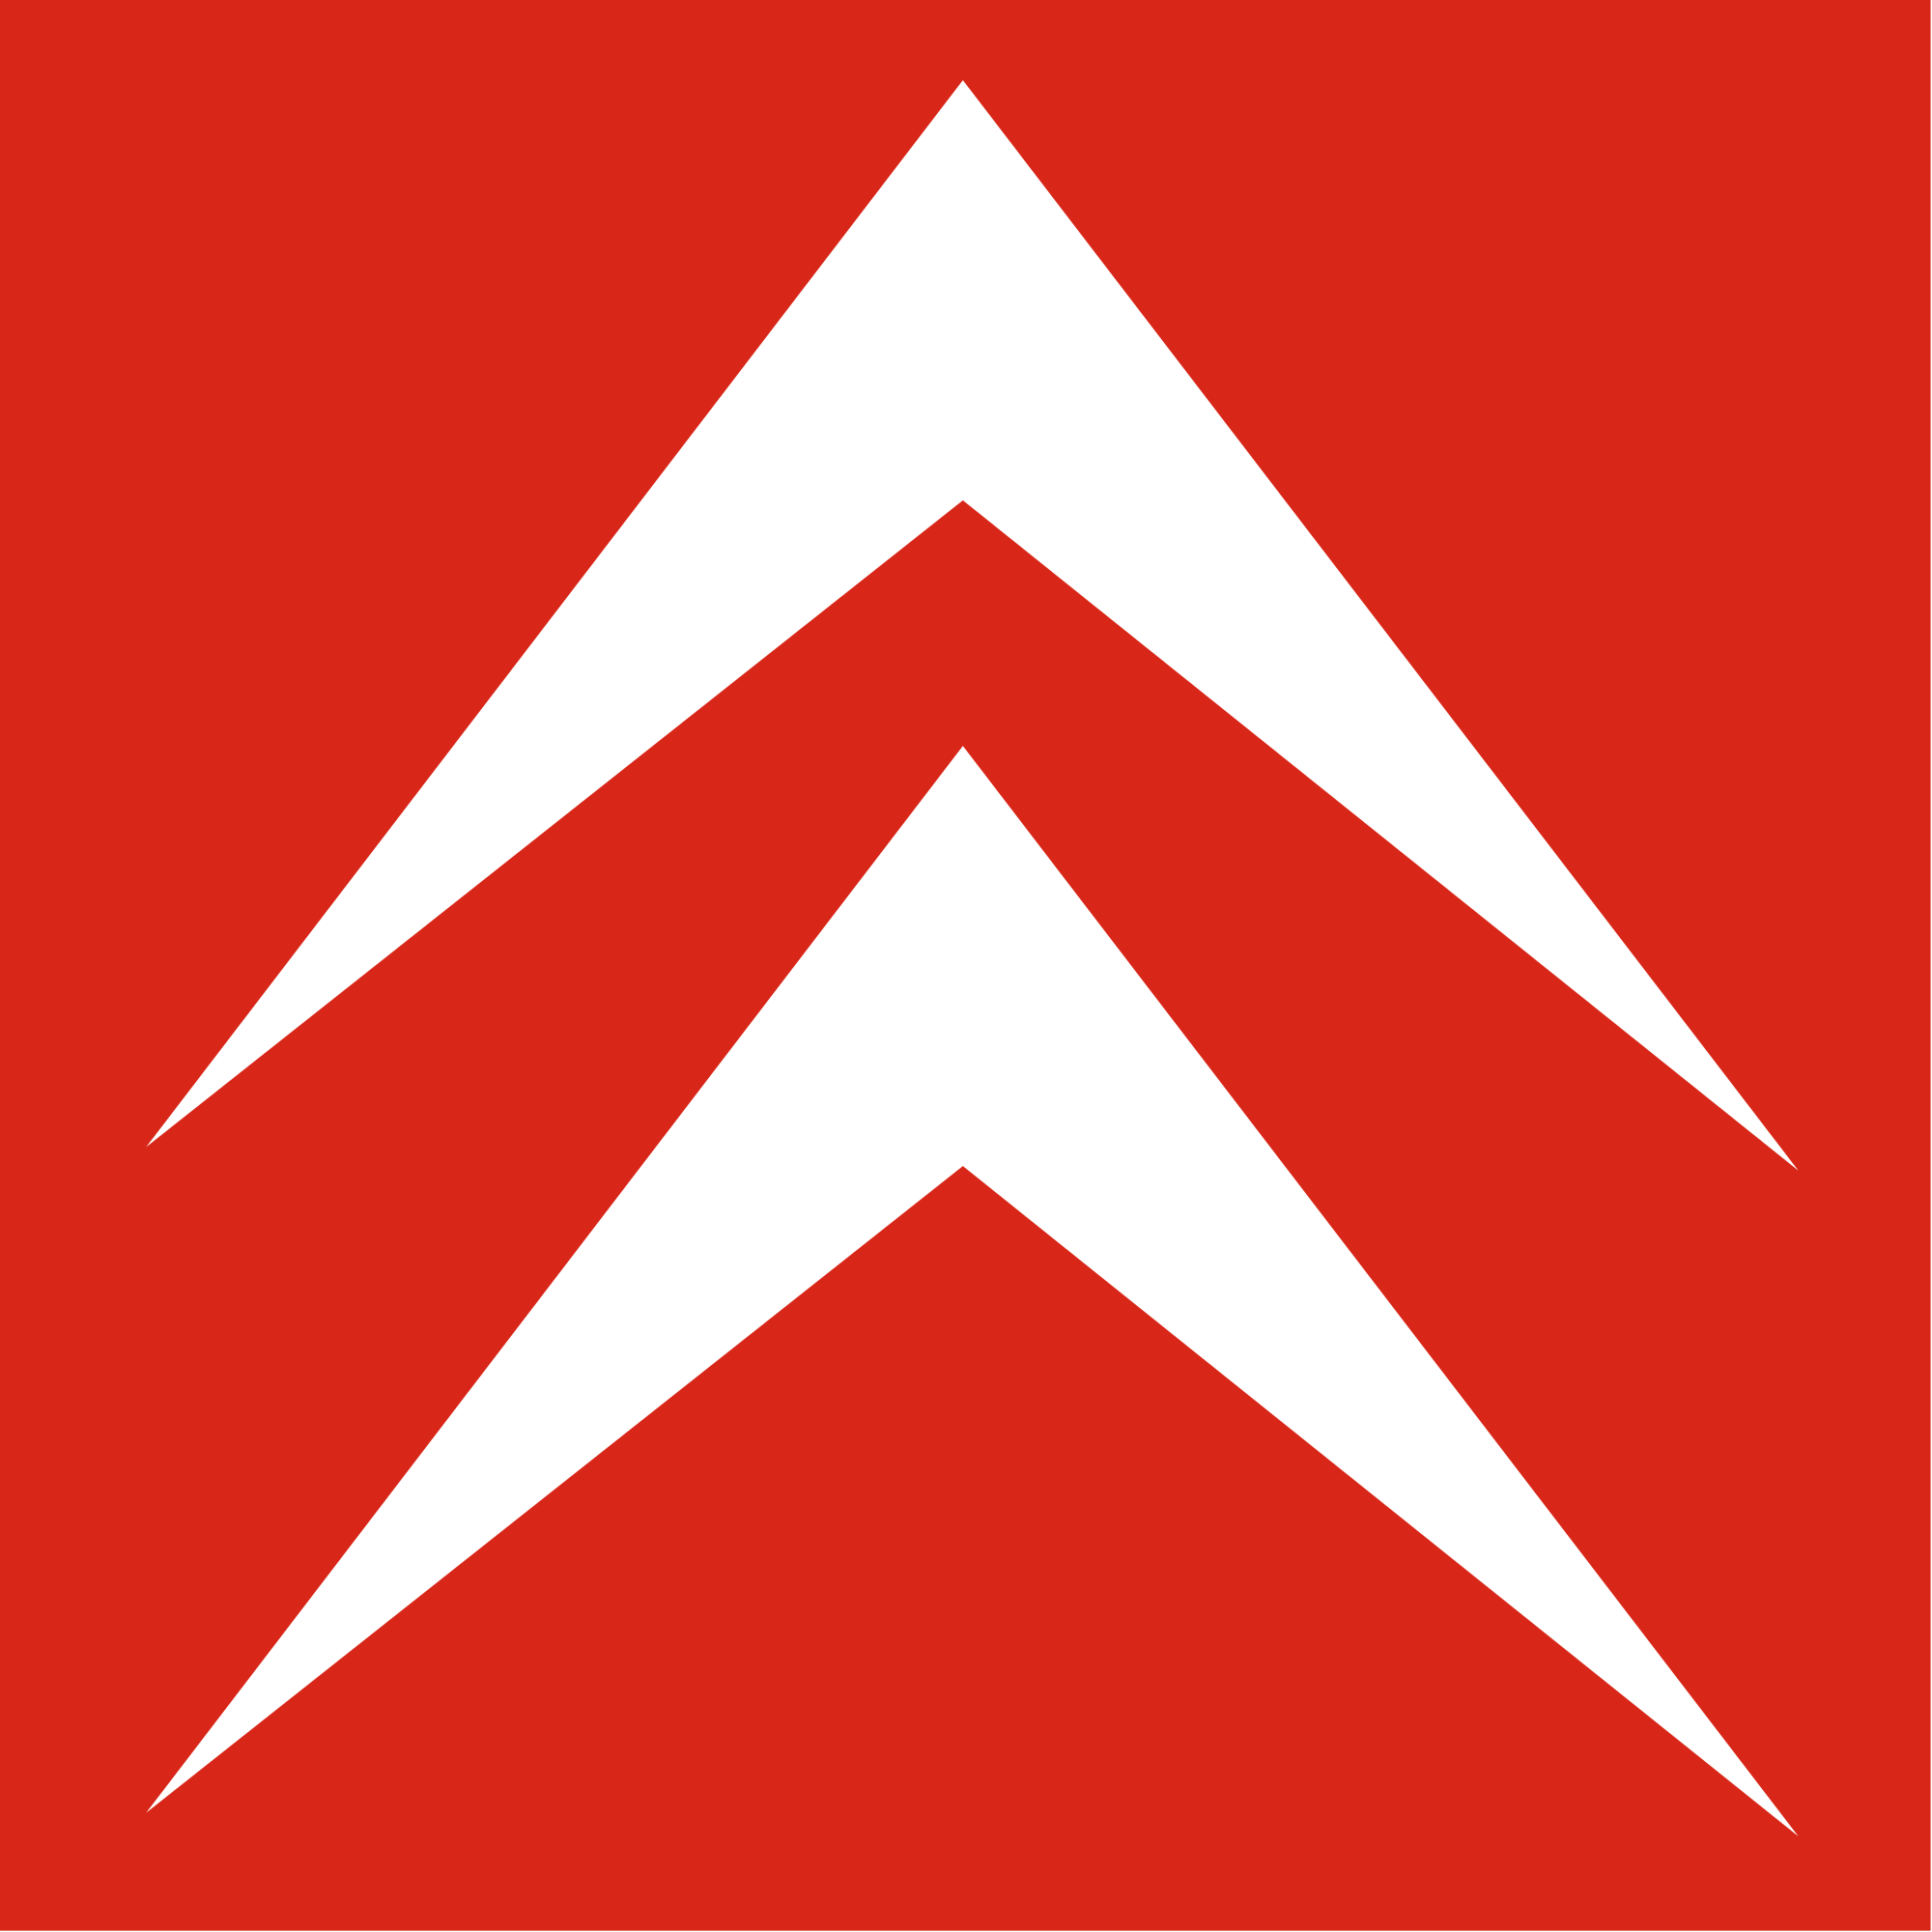 Citroen Logo - File:Citroën-Logo.svg - Wikimedia Commons